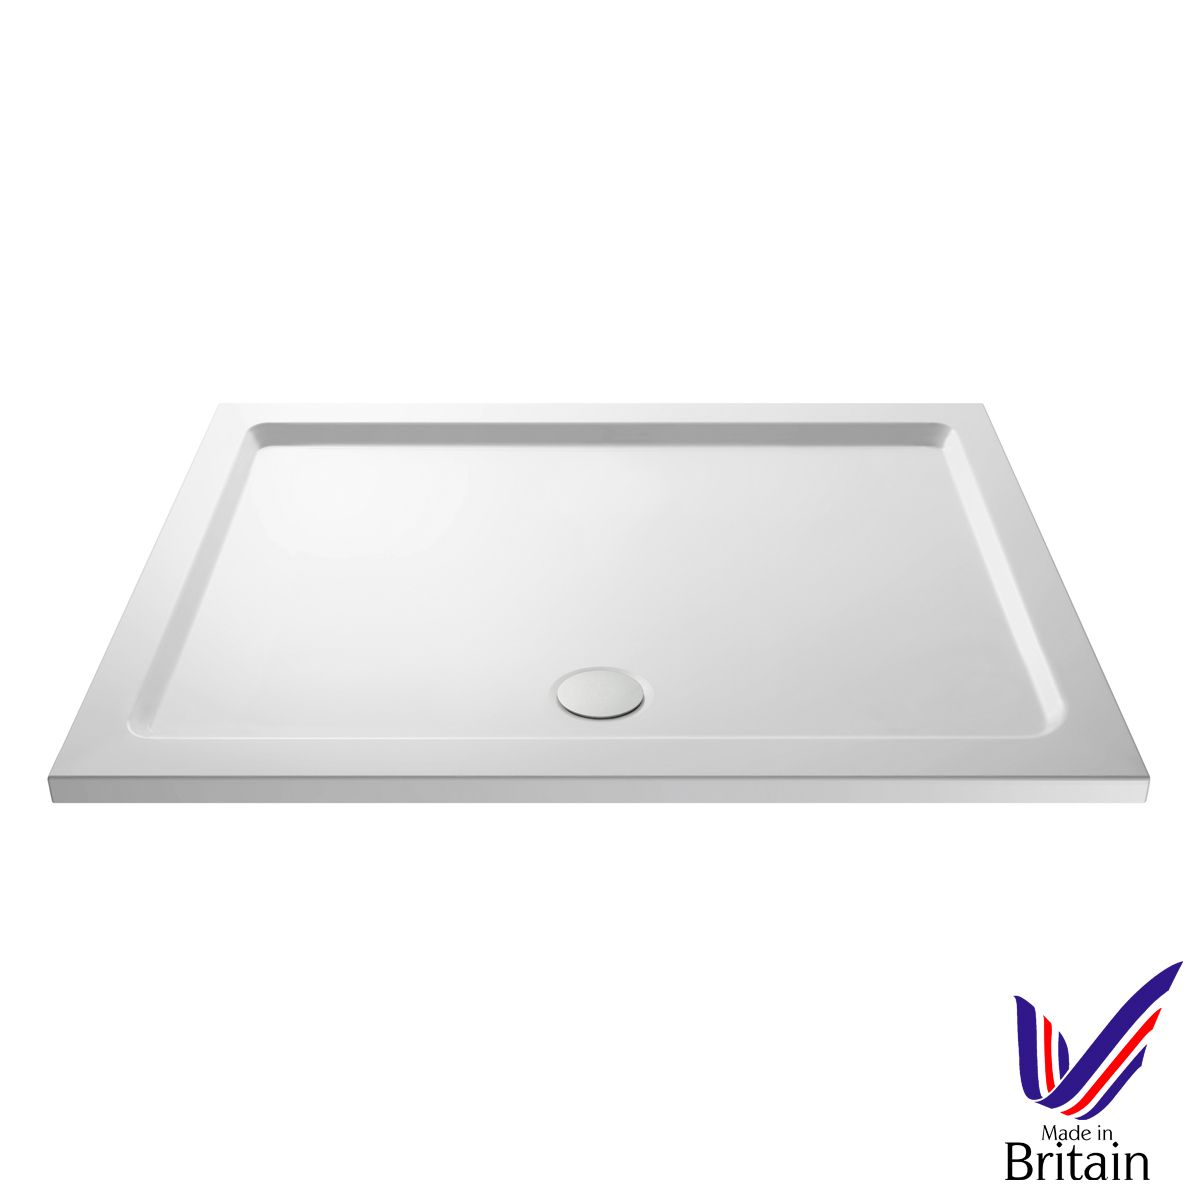 1600 x 800 Shower Tray Rectangular Low Profile by Pearlstone